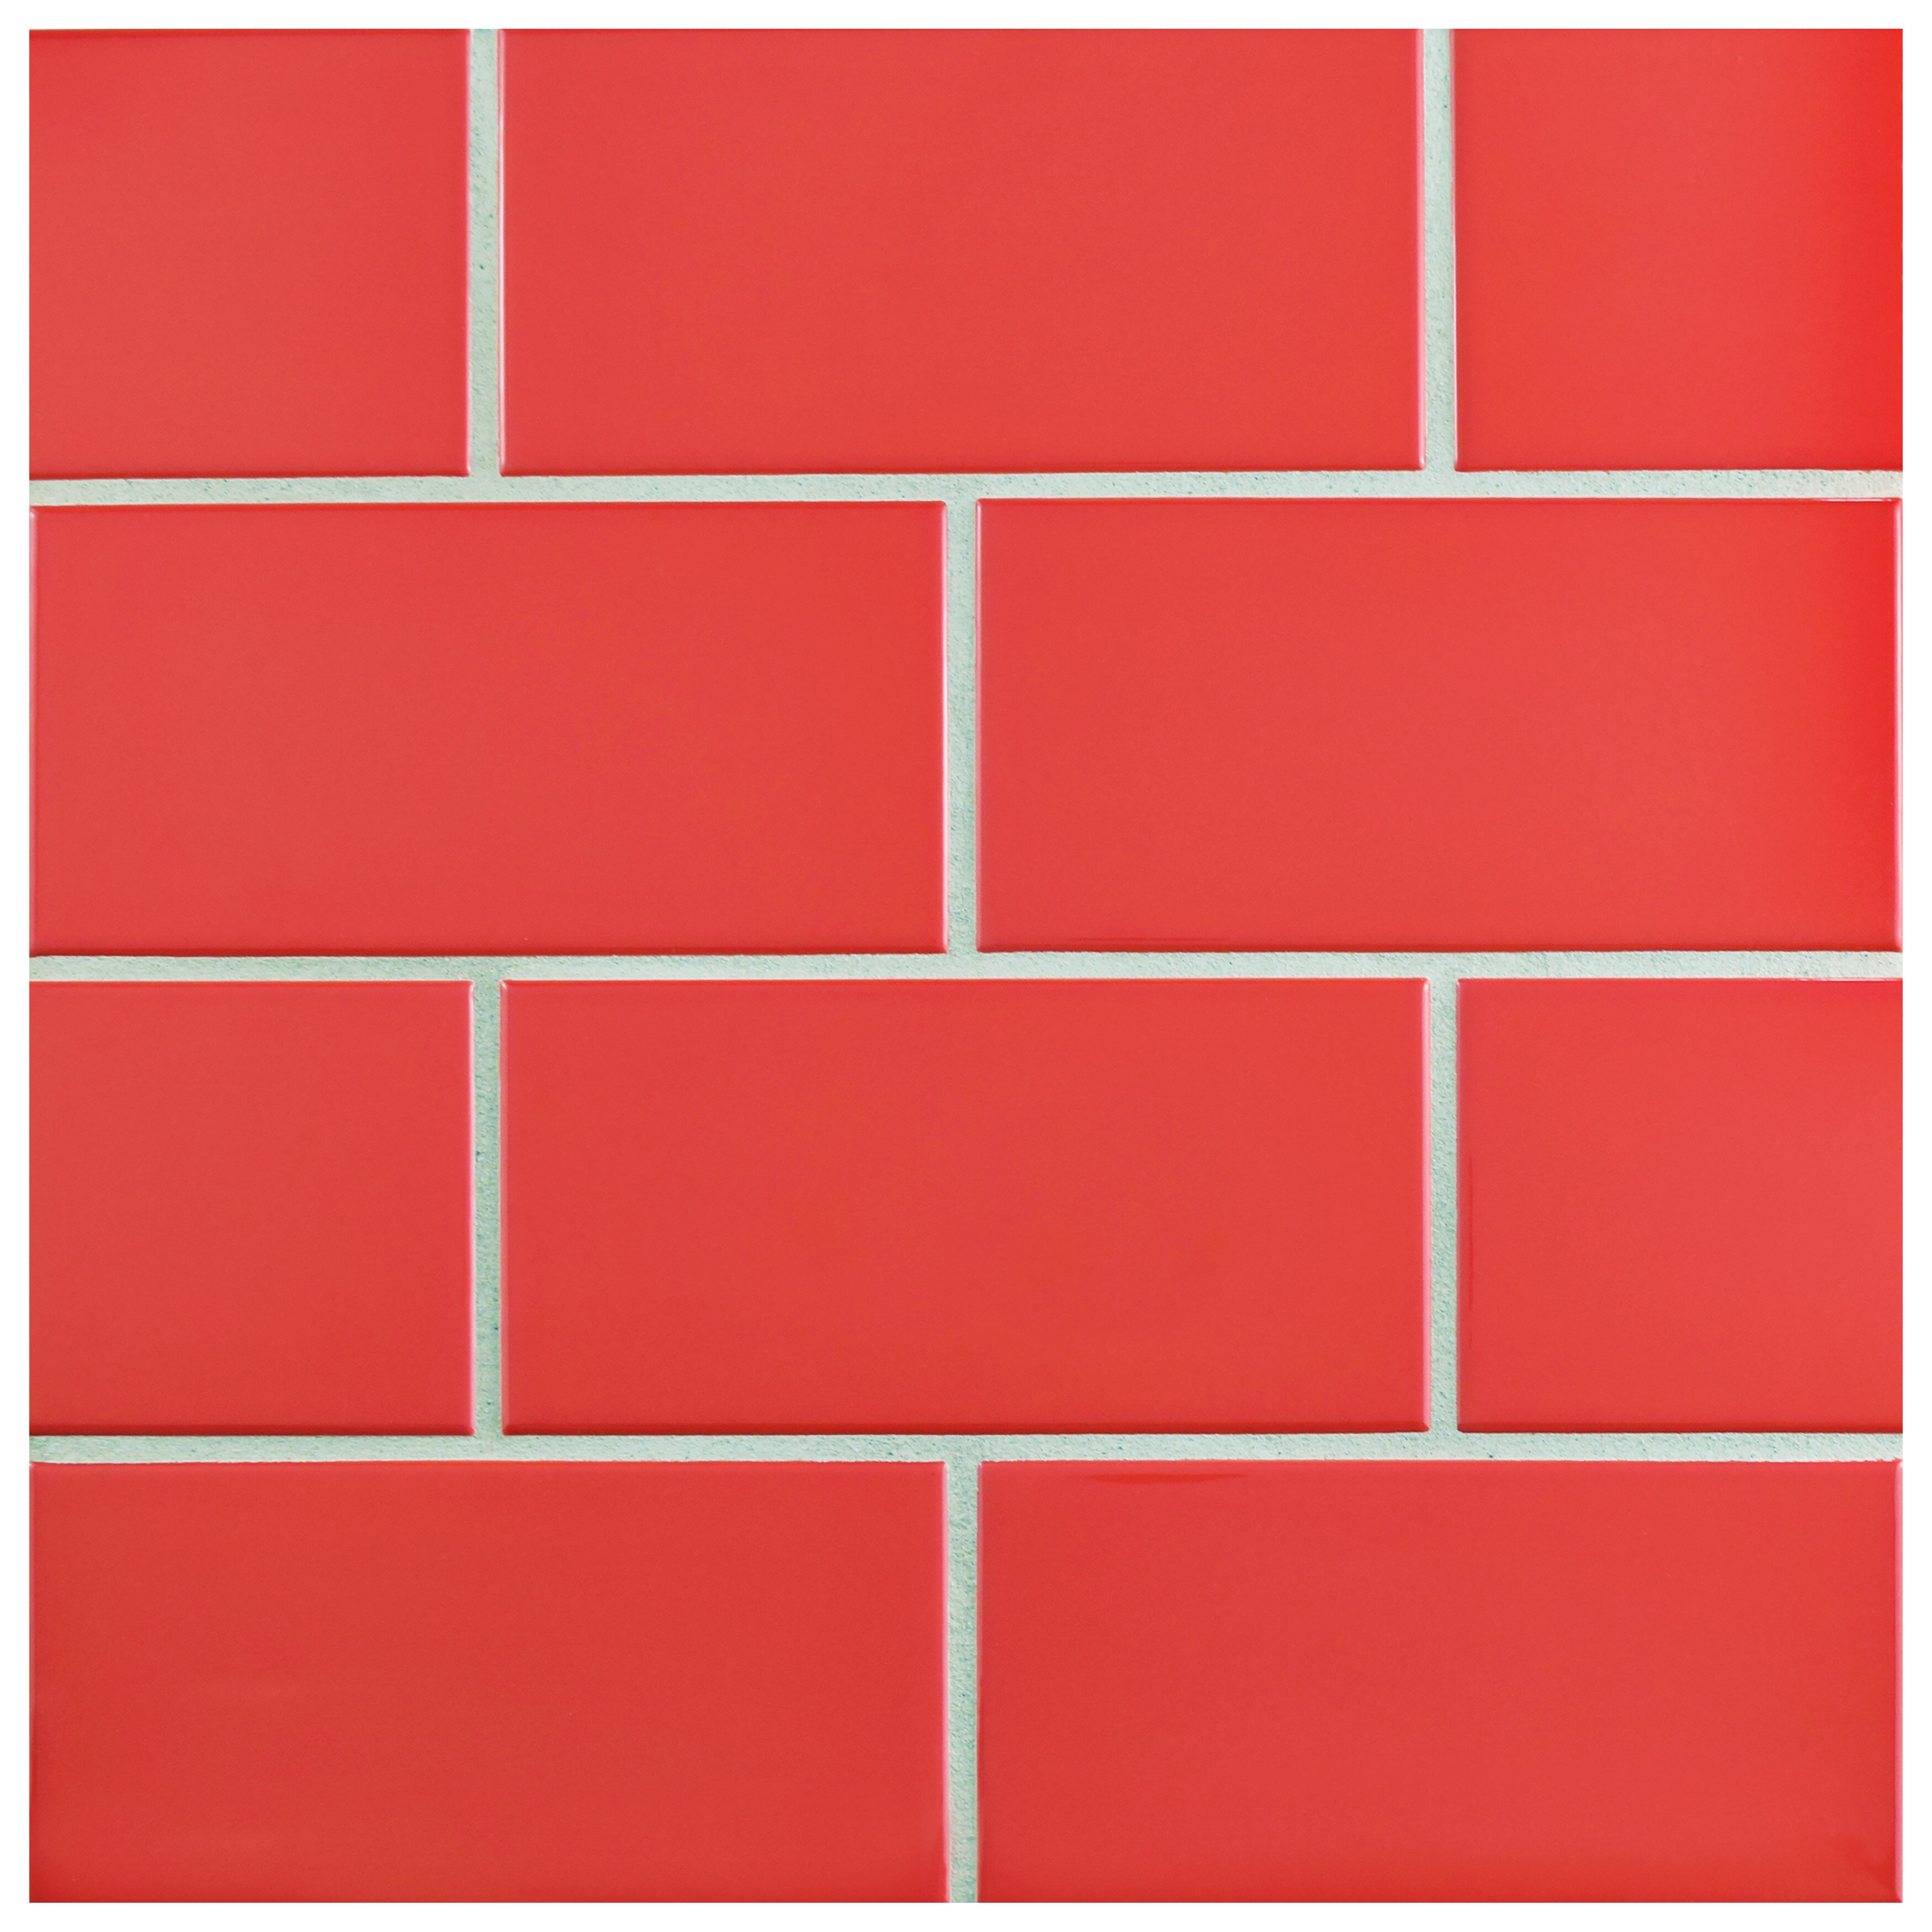 Elitetile Prospect 3 X 6 Ceramic Subway Tile In Glossy Le Red Wayfair